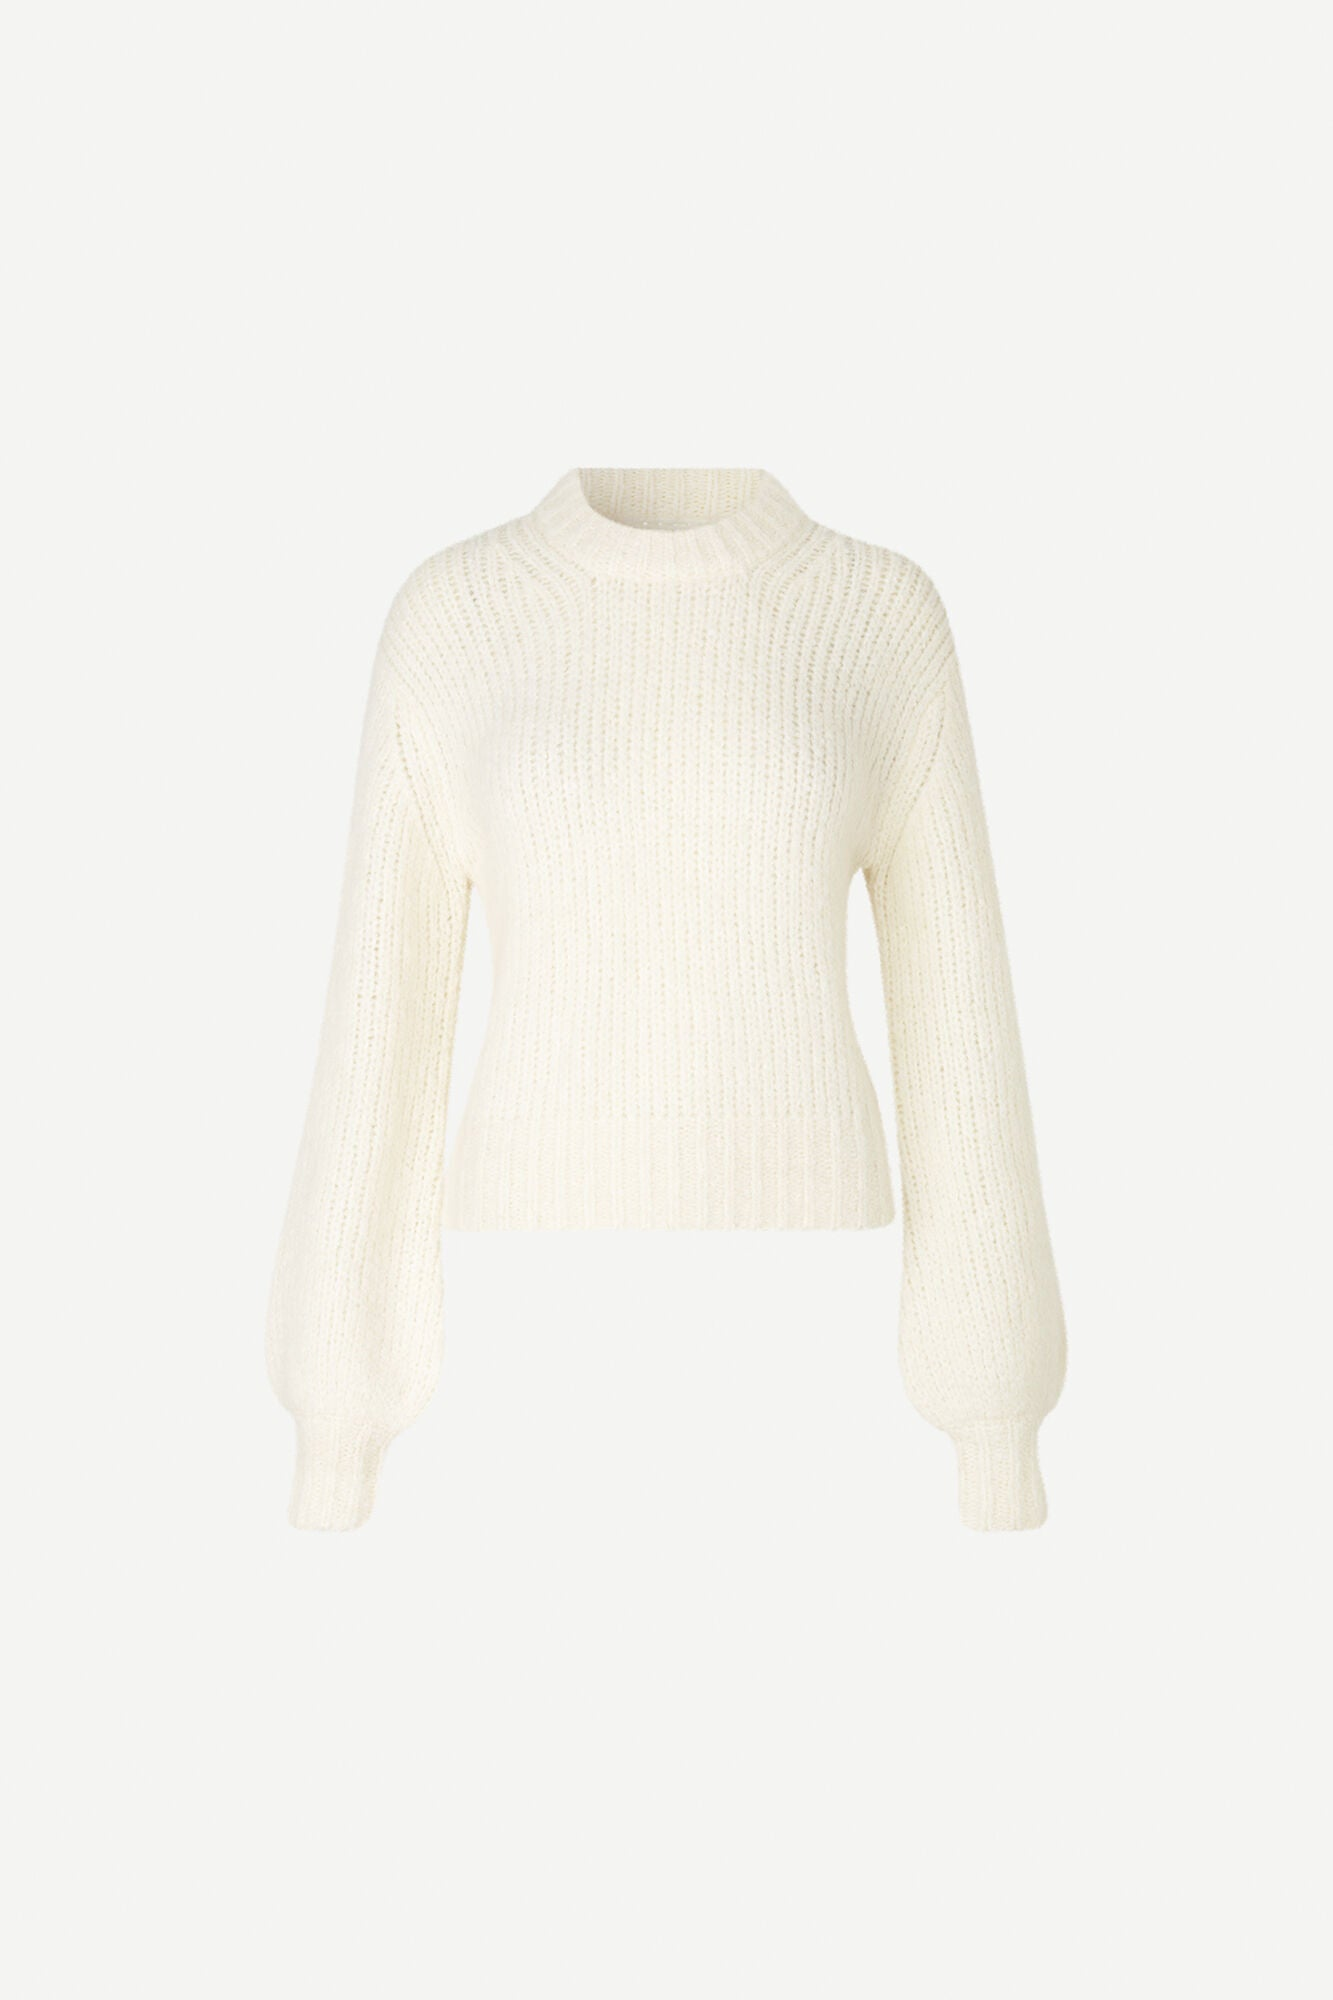 KNITTED CREW NECK IN IVORY WHITE